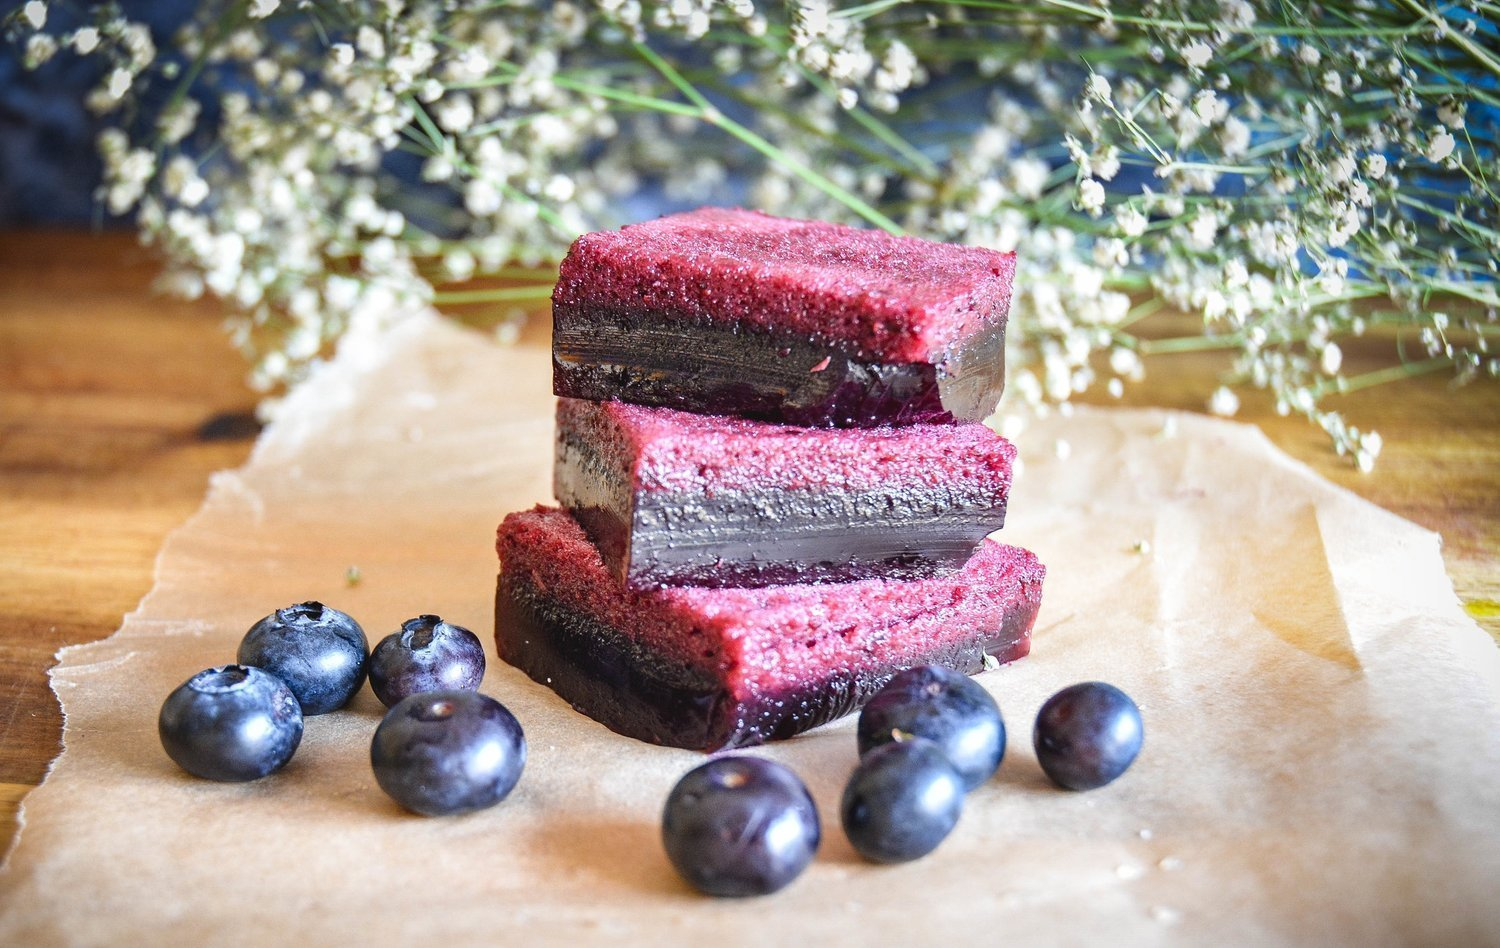 Paleo glowing skin blueberry jello, featured in 65+ nutrient dense real food snack recipes.